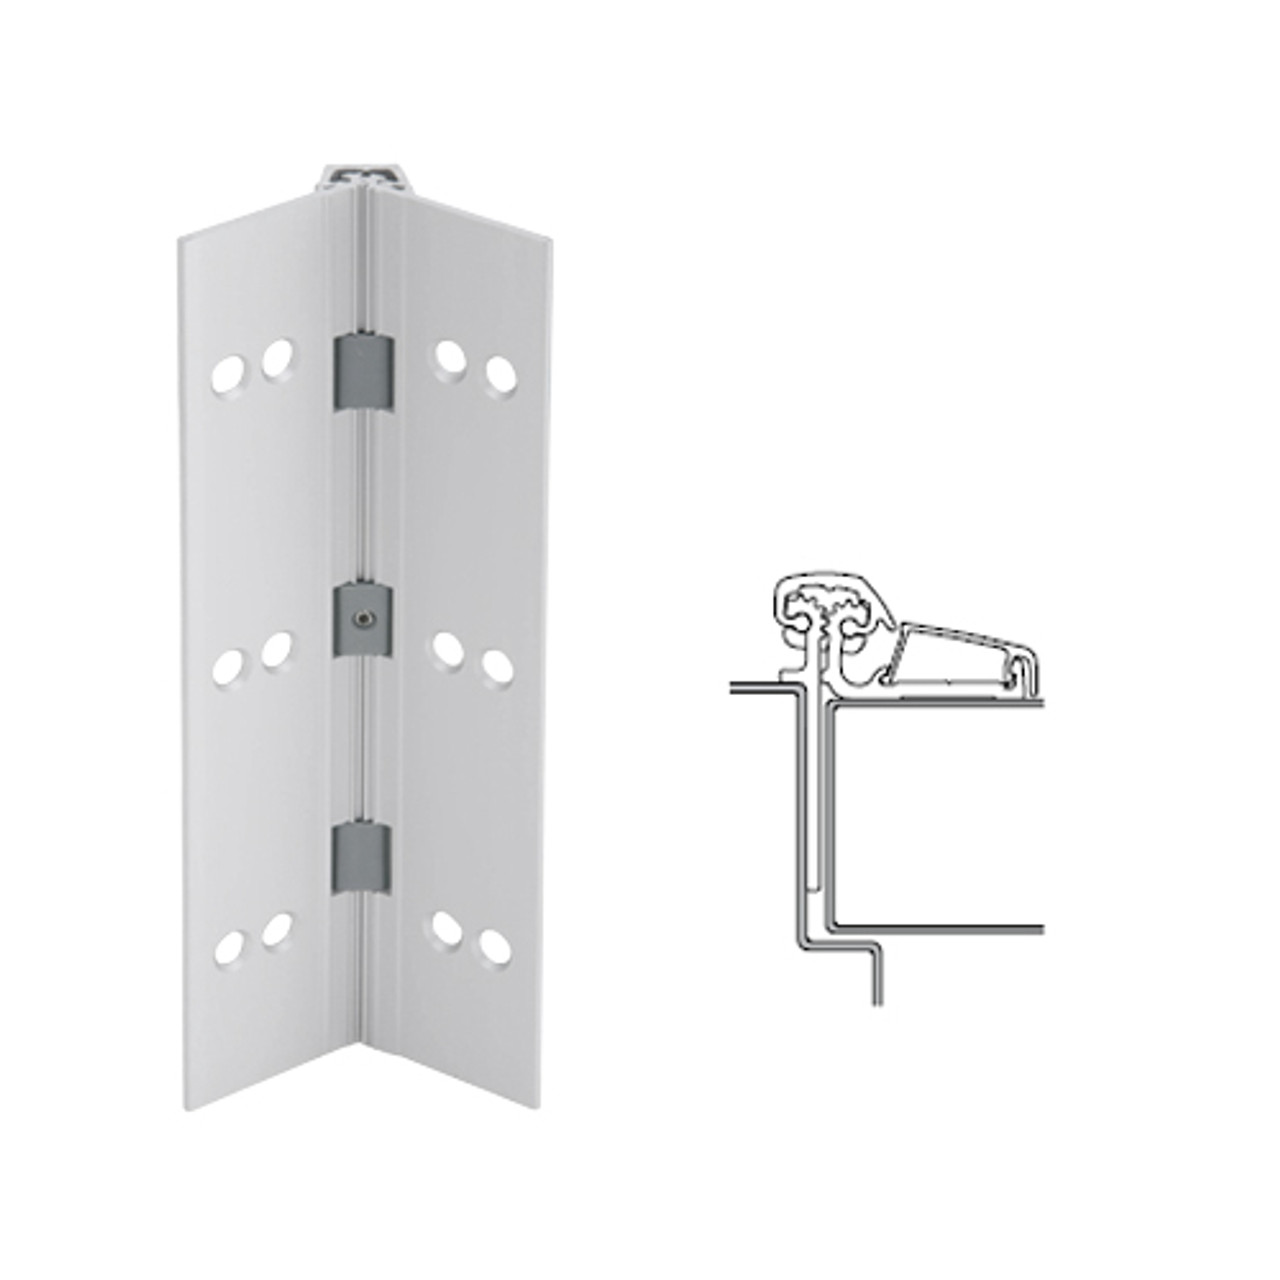 053XY-US28-95-SECWDHM IVES Adjustable Half Surface Continuous Geared Hinges with Security Screws - Hex Pin Drive in Satin Aluminum